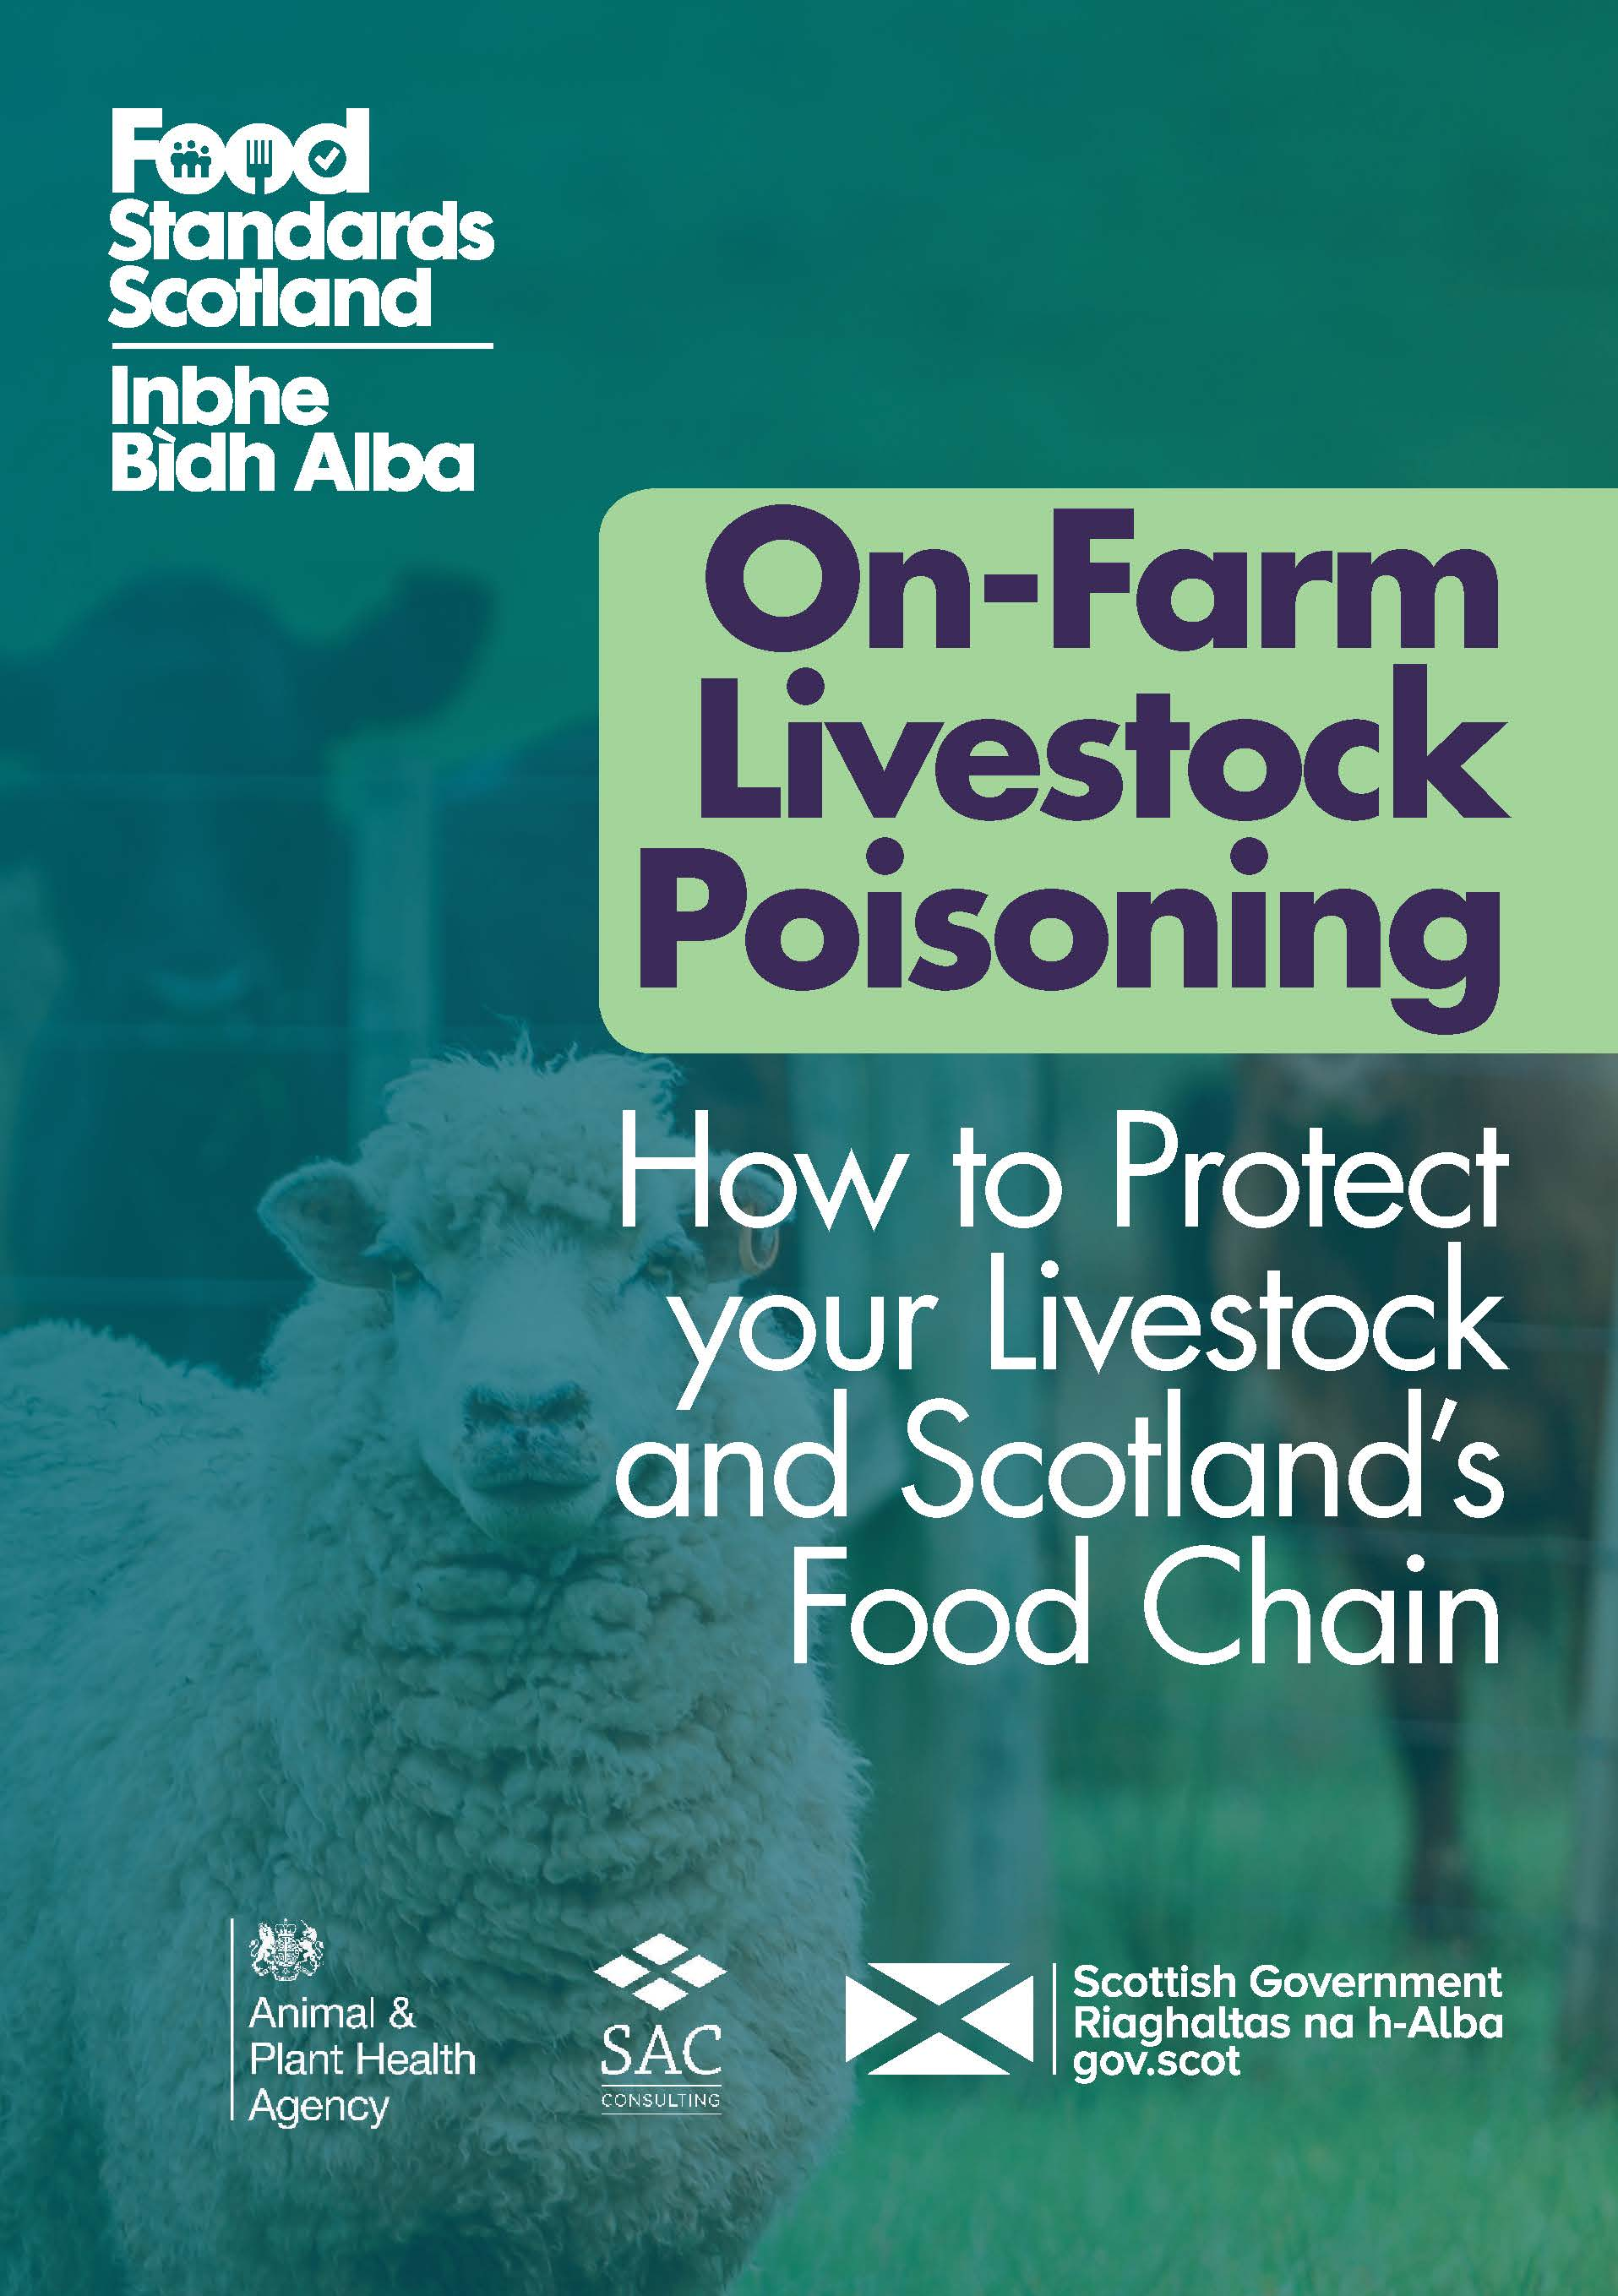 Food Standards Scotland On Farm Poisoning leaflet cover